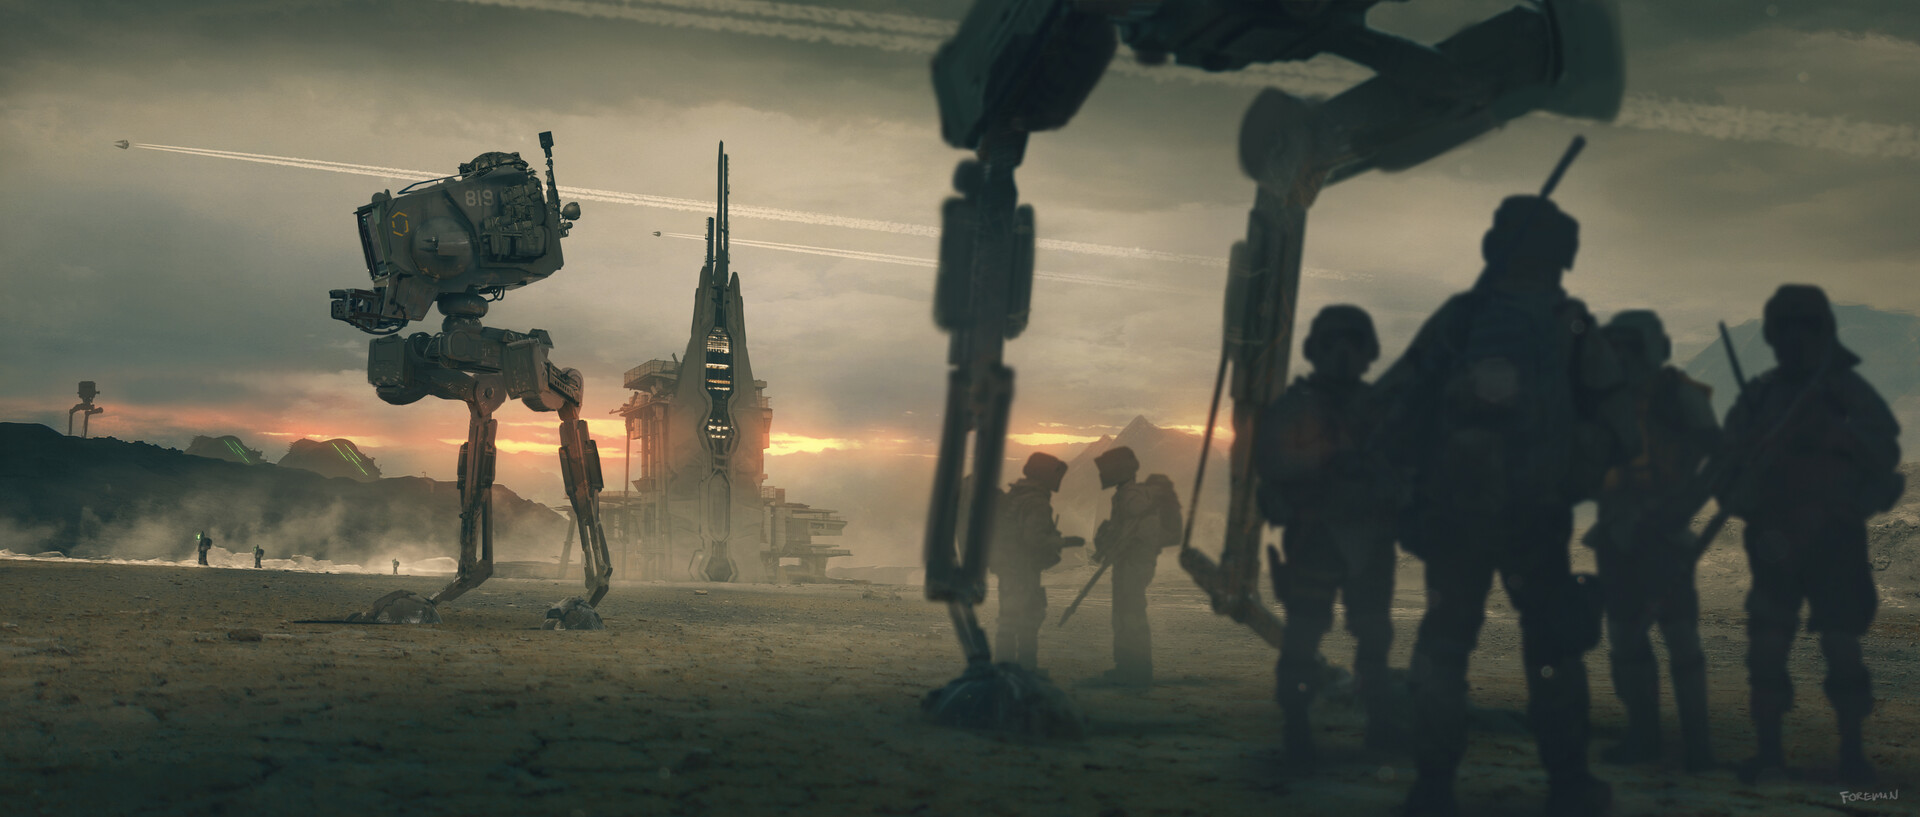 The Sci-Fi Concept Art of Nick Foreman